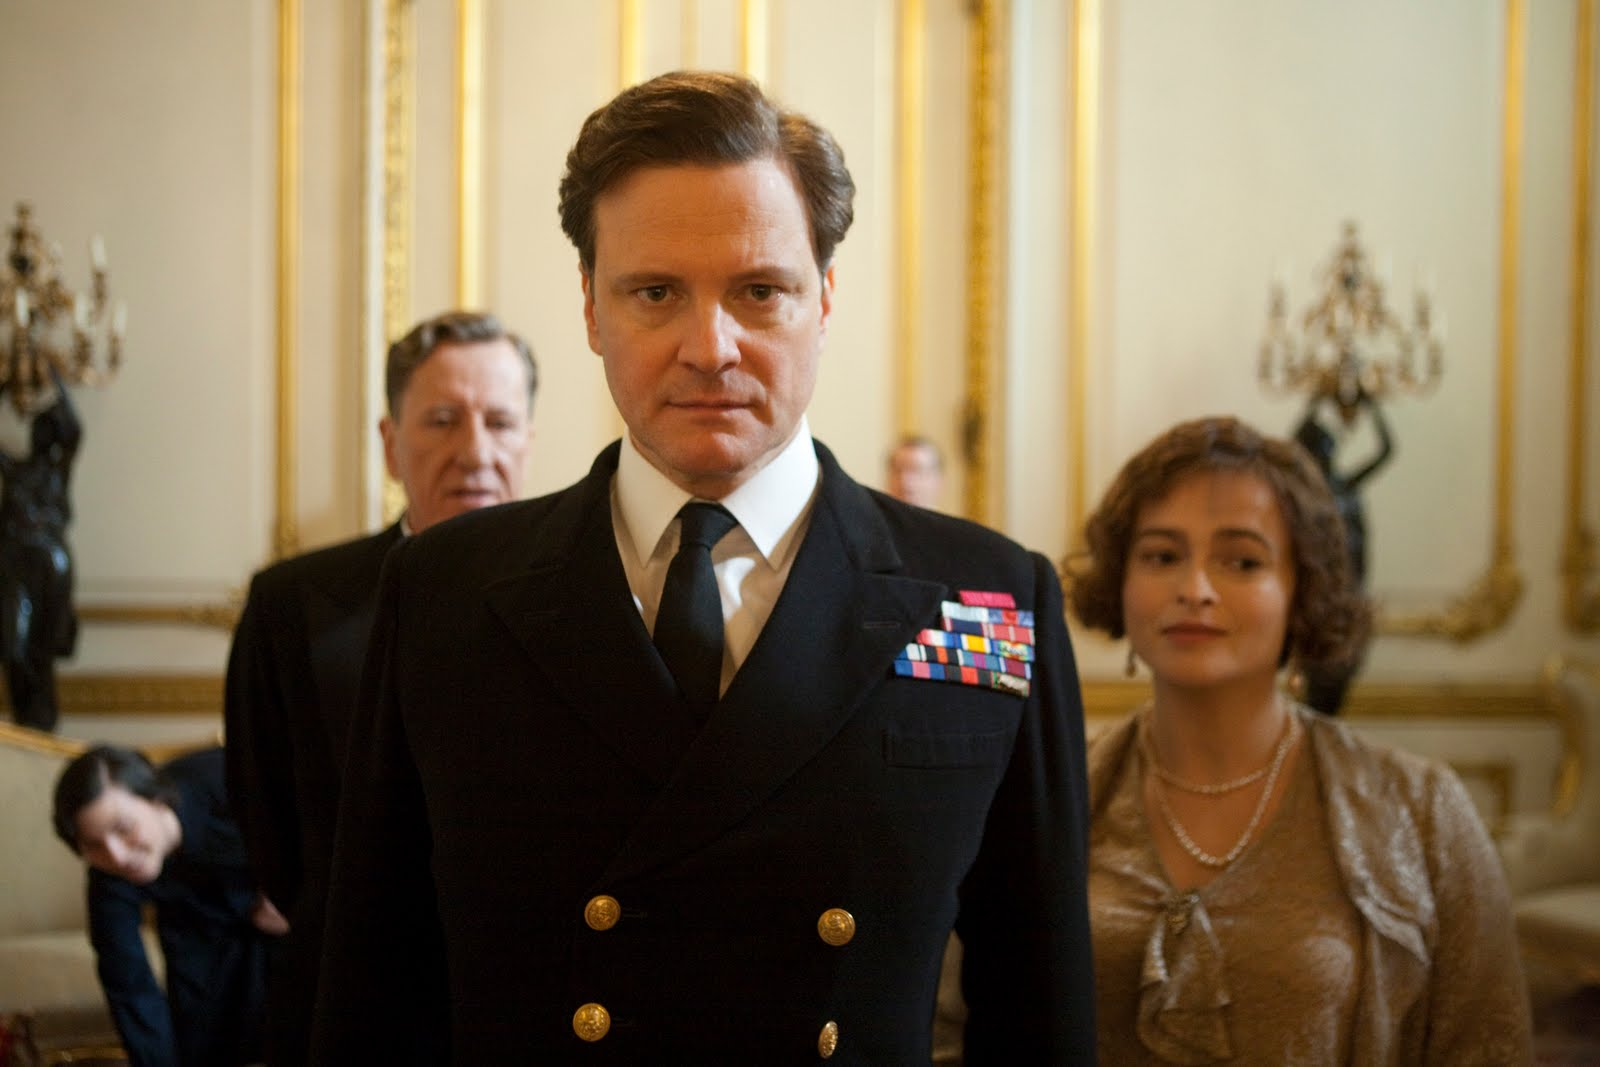 The King's Speech Gets A PG-13 Rating